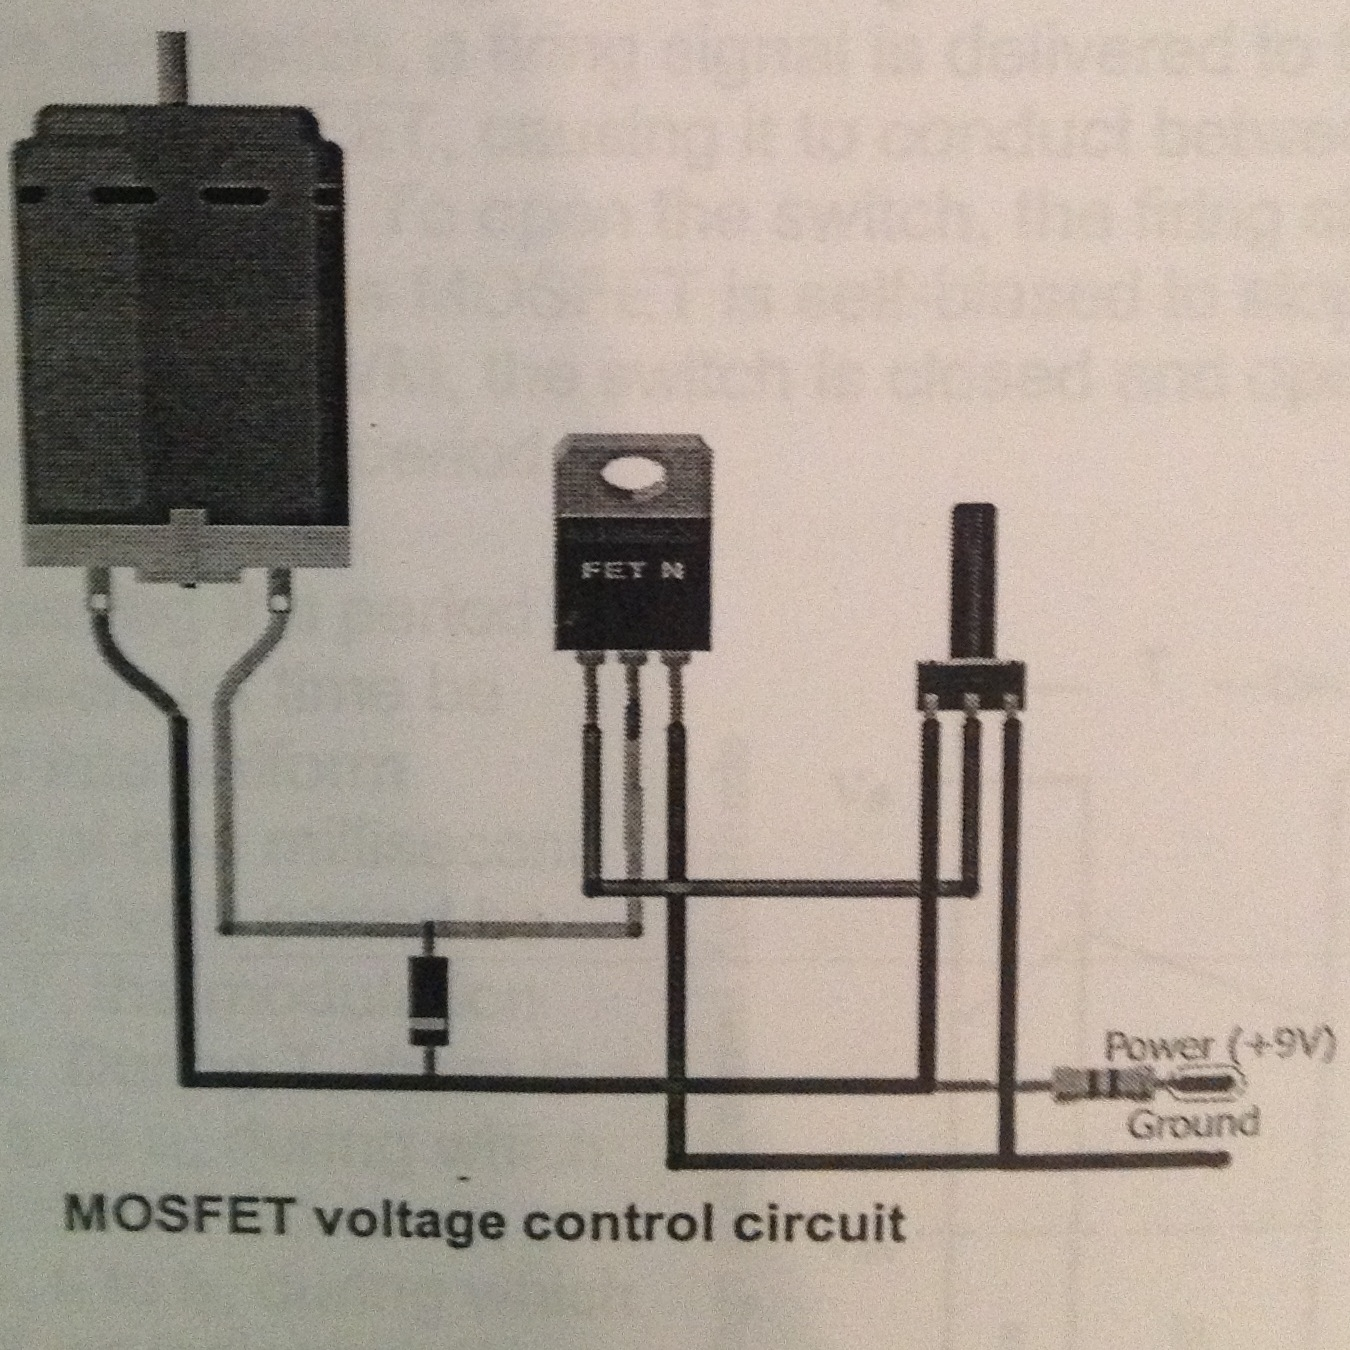 Mosfet Control Of An Electric Motor Engineering 44 Potentiometer Wiring Diagram Power Our Goal Was To Vary The Speed By Adjusting This Is First Circuit That We Studied